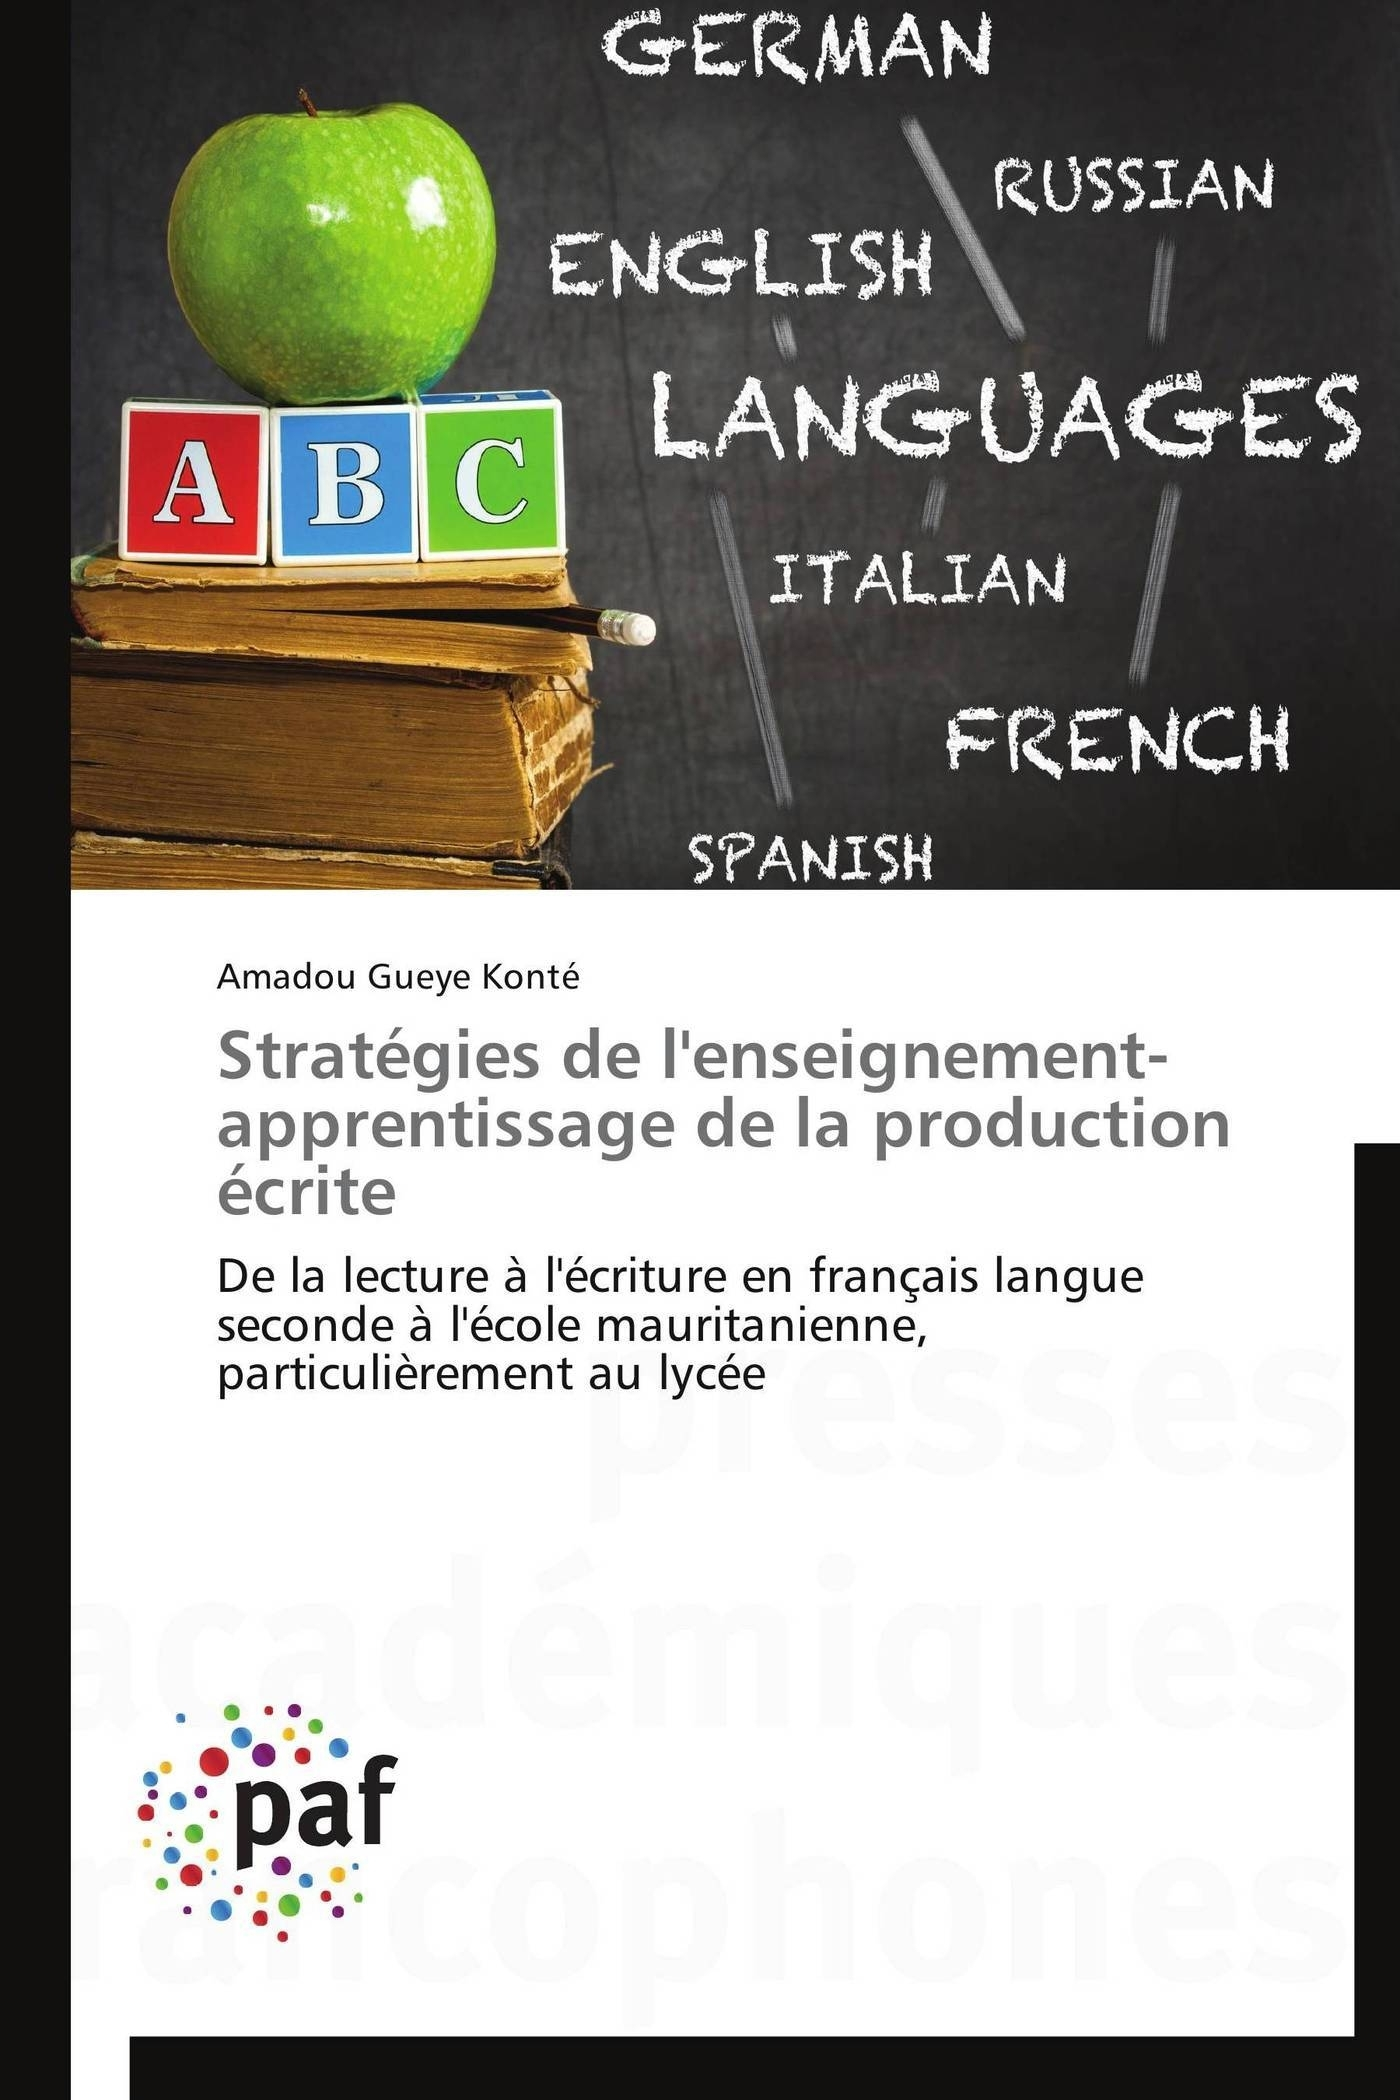 STRATEGIES DE L'ENSEIGNEMENT-APPRENTISSAGE DE LA PRODUCTION ECRITE